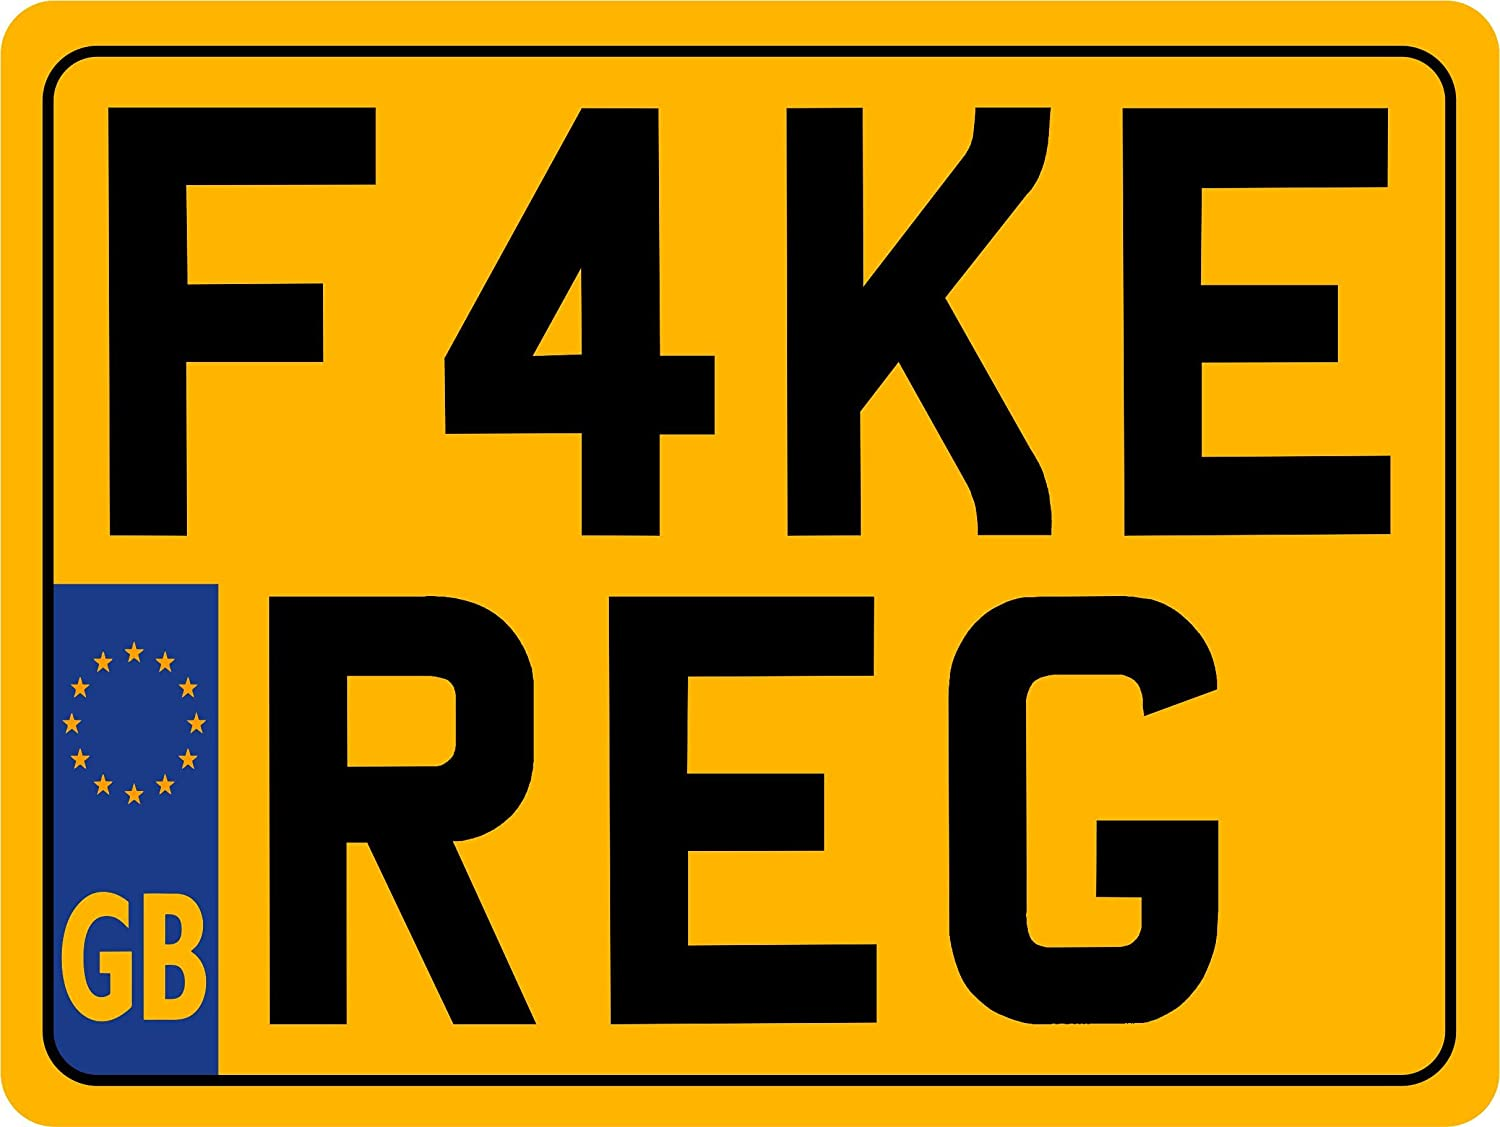 not road legal 8 X 6 REAR CLASSIC NUMBER PLATE 8 x 6 for Motorcycle SHOW PLATES with or with out border /& free bottom line text choice of sizes 9 x 3 // 8 x 6 // 7 x 4 // 7 x 5 // 6 x 5 // 6 x 4 also custom sizes